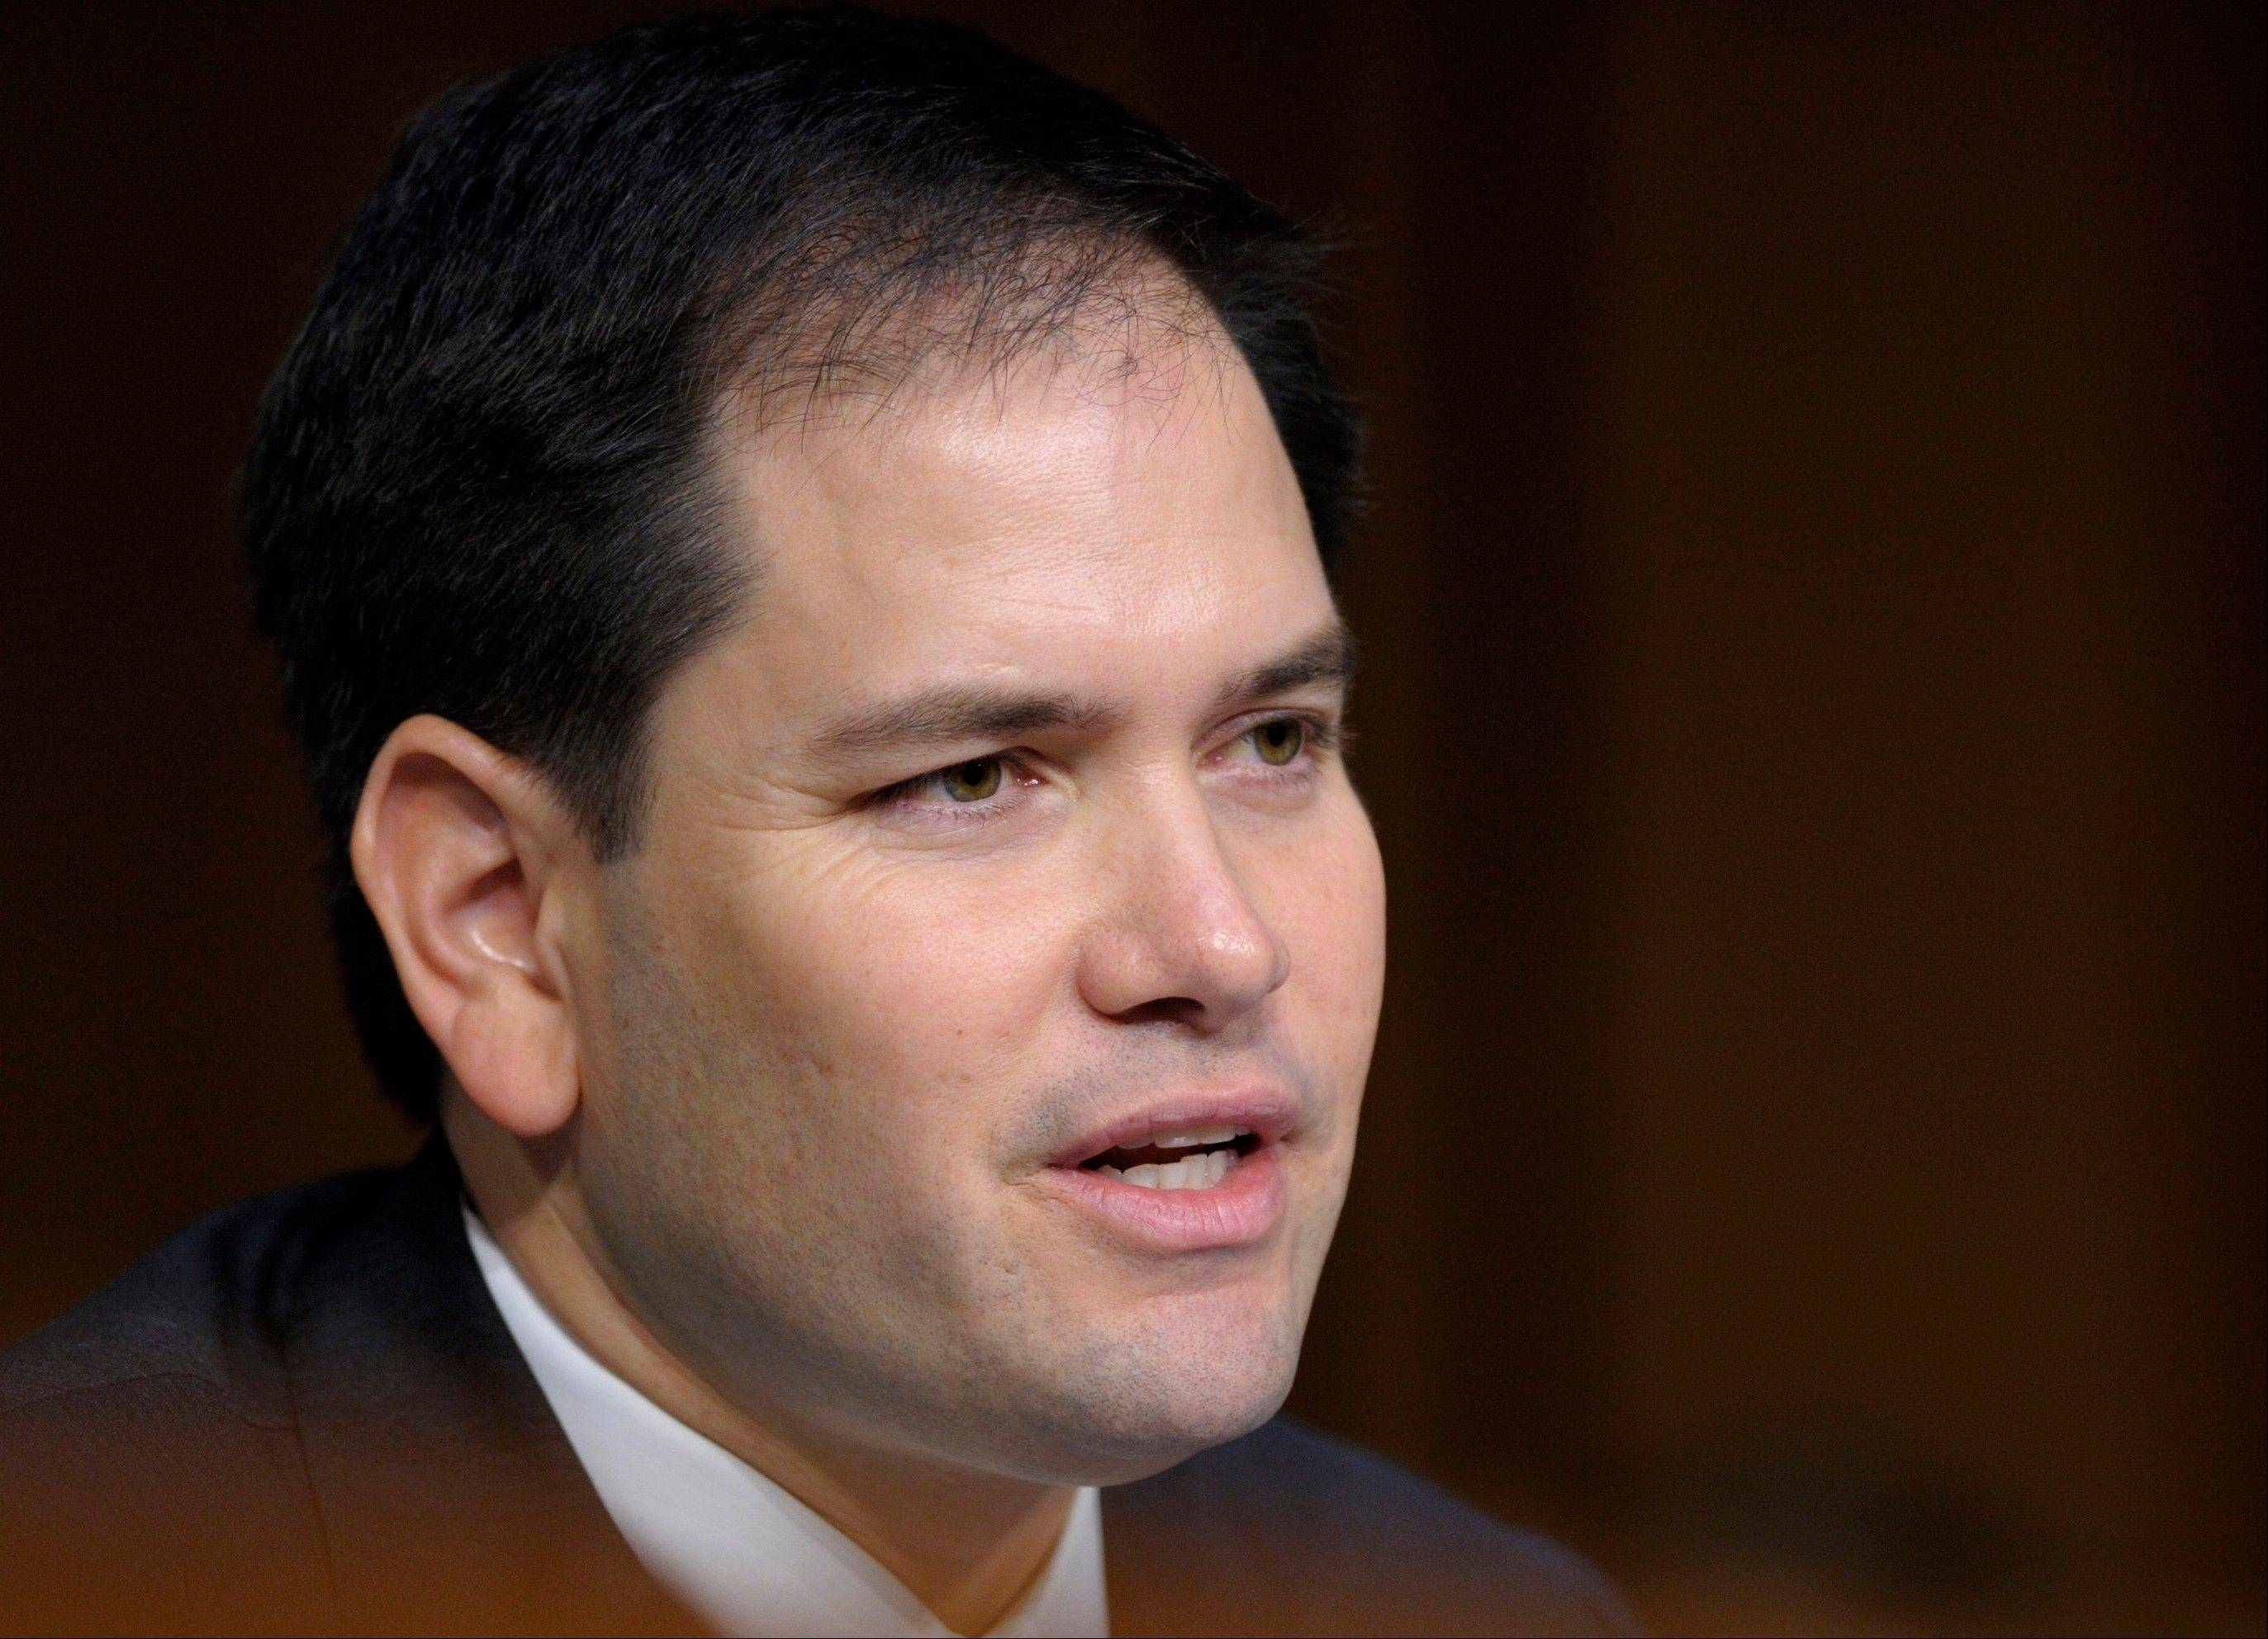 Sen. Marco Rubio said Sunday about proposed immigration law reforms that �there will be consequences for having violated the laws.�